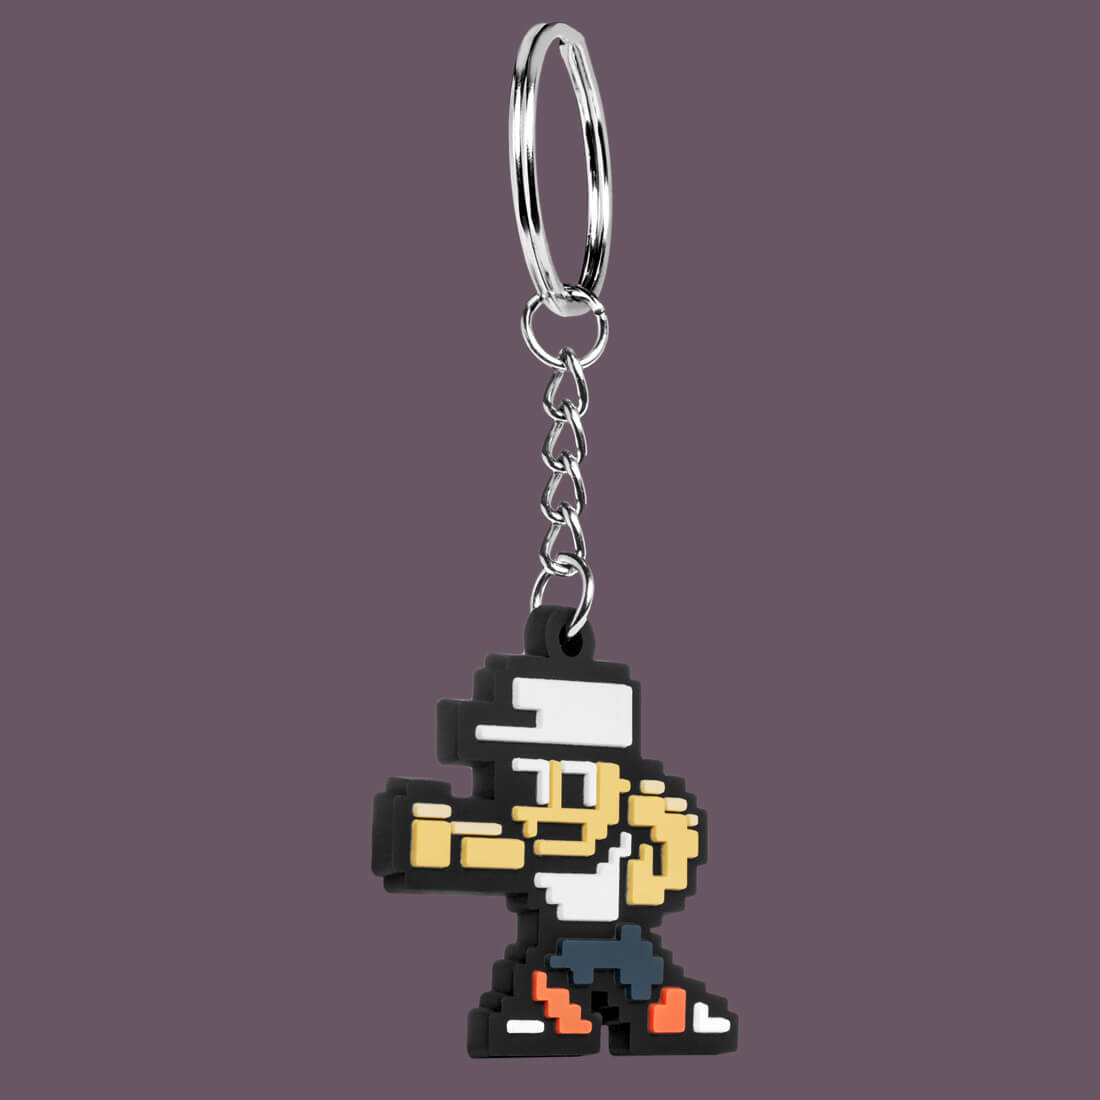 rf_fighter1_keychain_angle_1100x1100